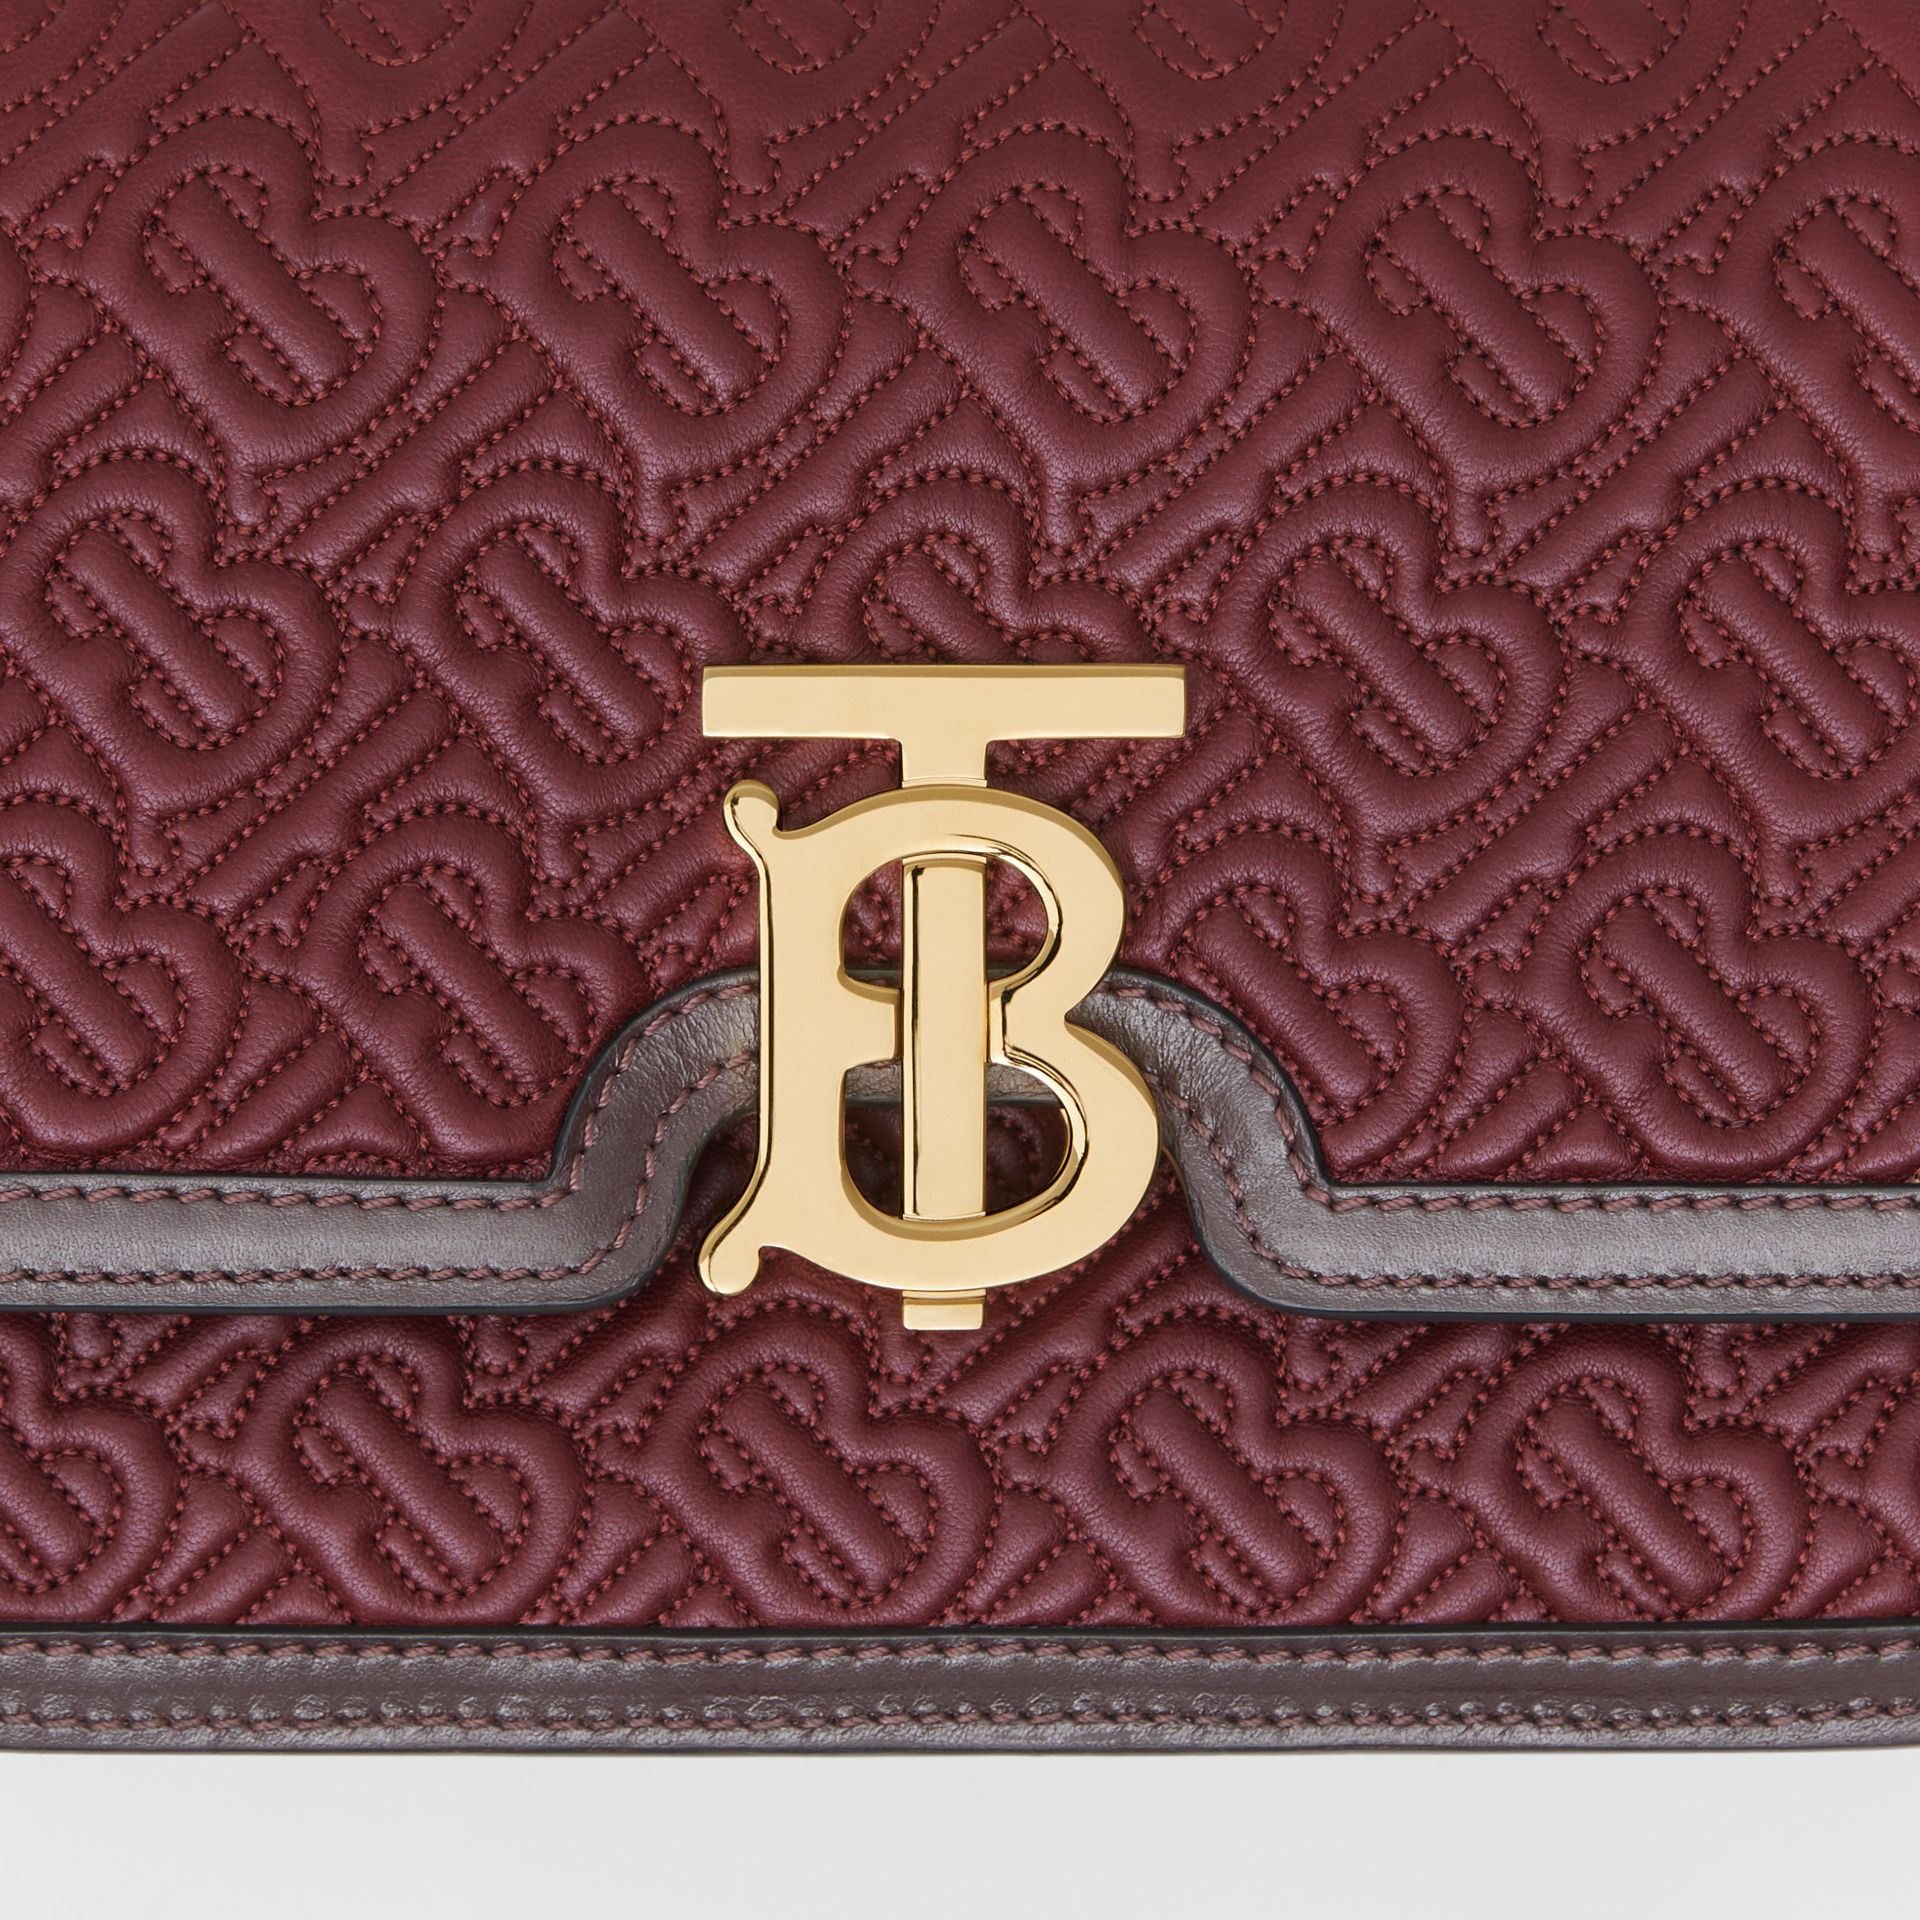 Small Quilted Monogram Lambskin TB Bag in Dark Burgundy - Women | Burberry - gallery image 1